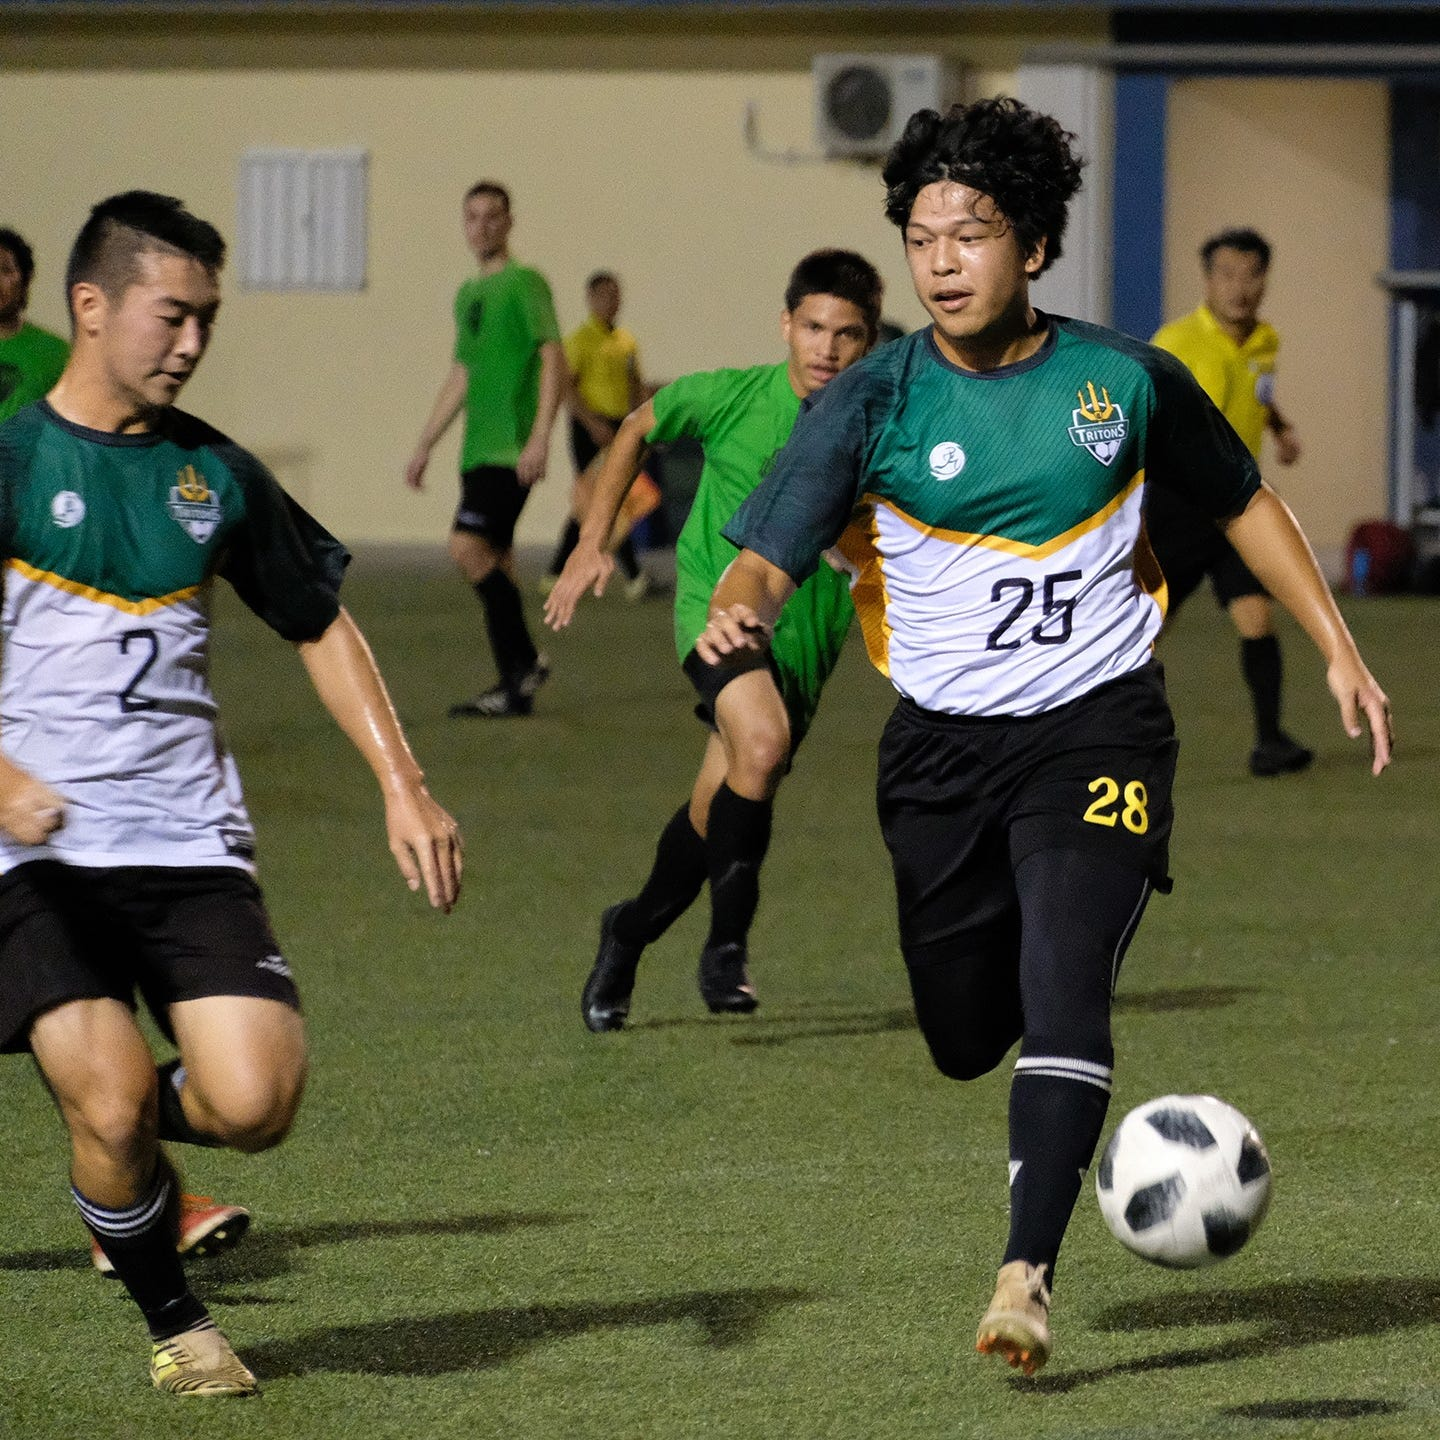 Islanders FC beat UOG Tritons in soccer match